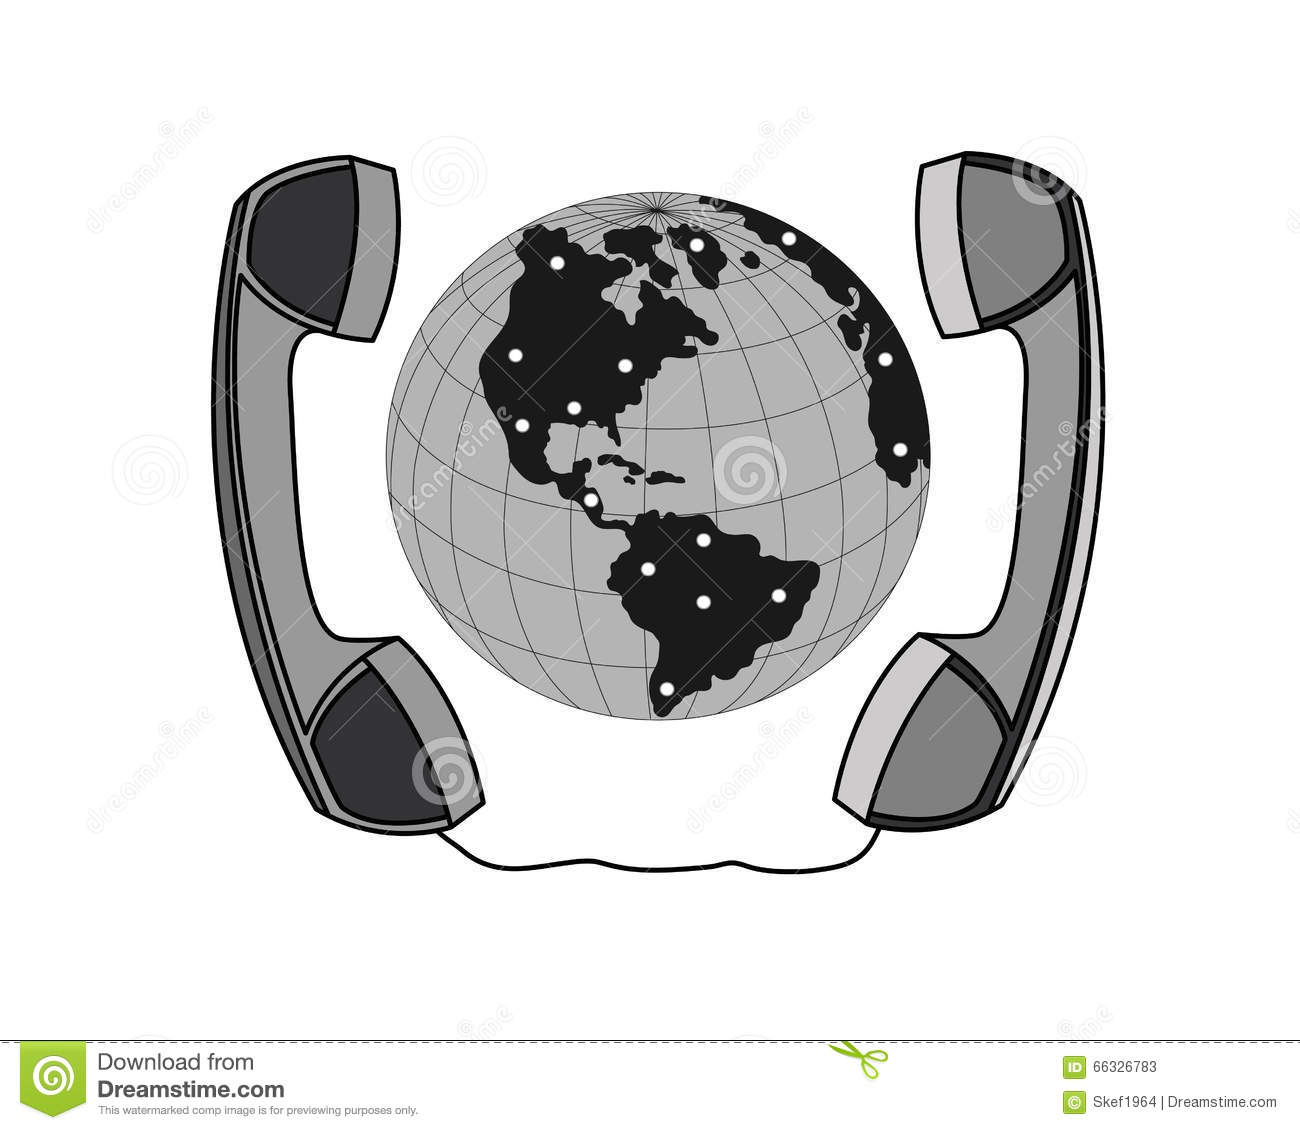 management negotiation and communication in business in globalized economy The companies that will see growth in the coming decades are mastering how to do business  communication , group dynamics  be at the negotiation table because.